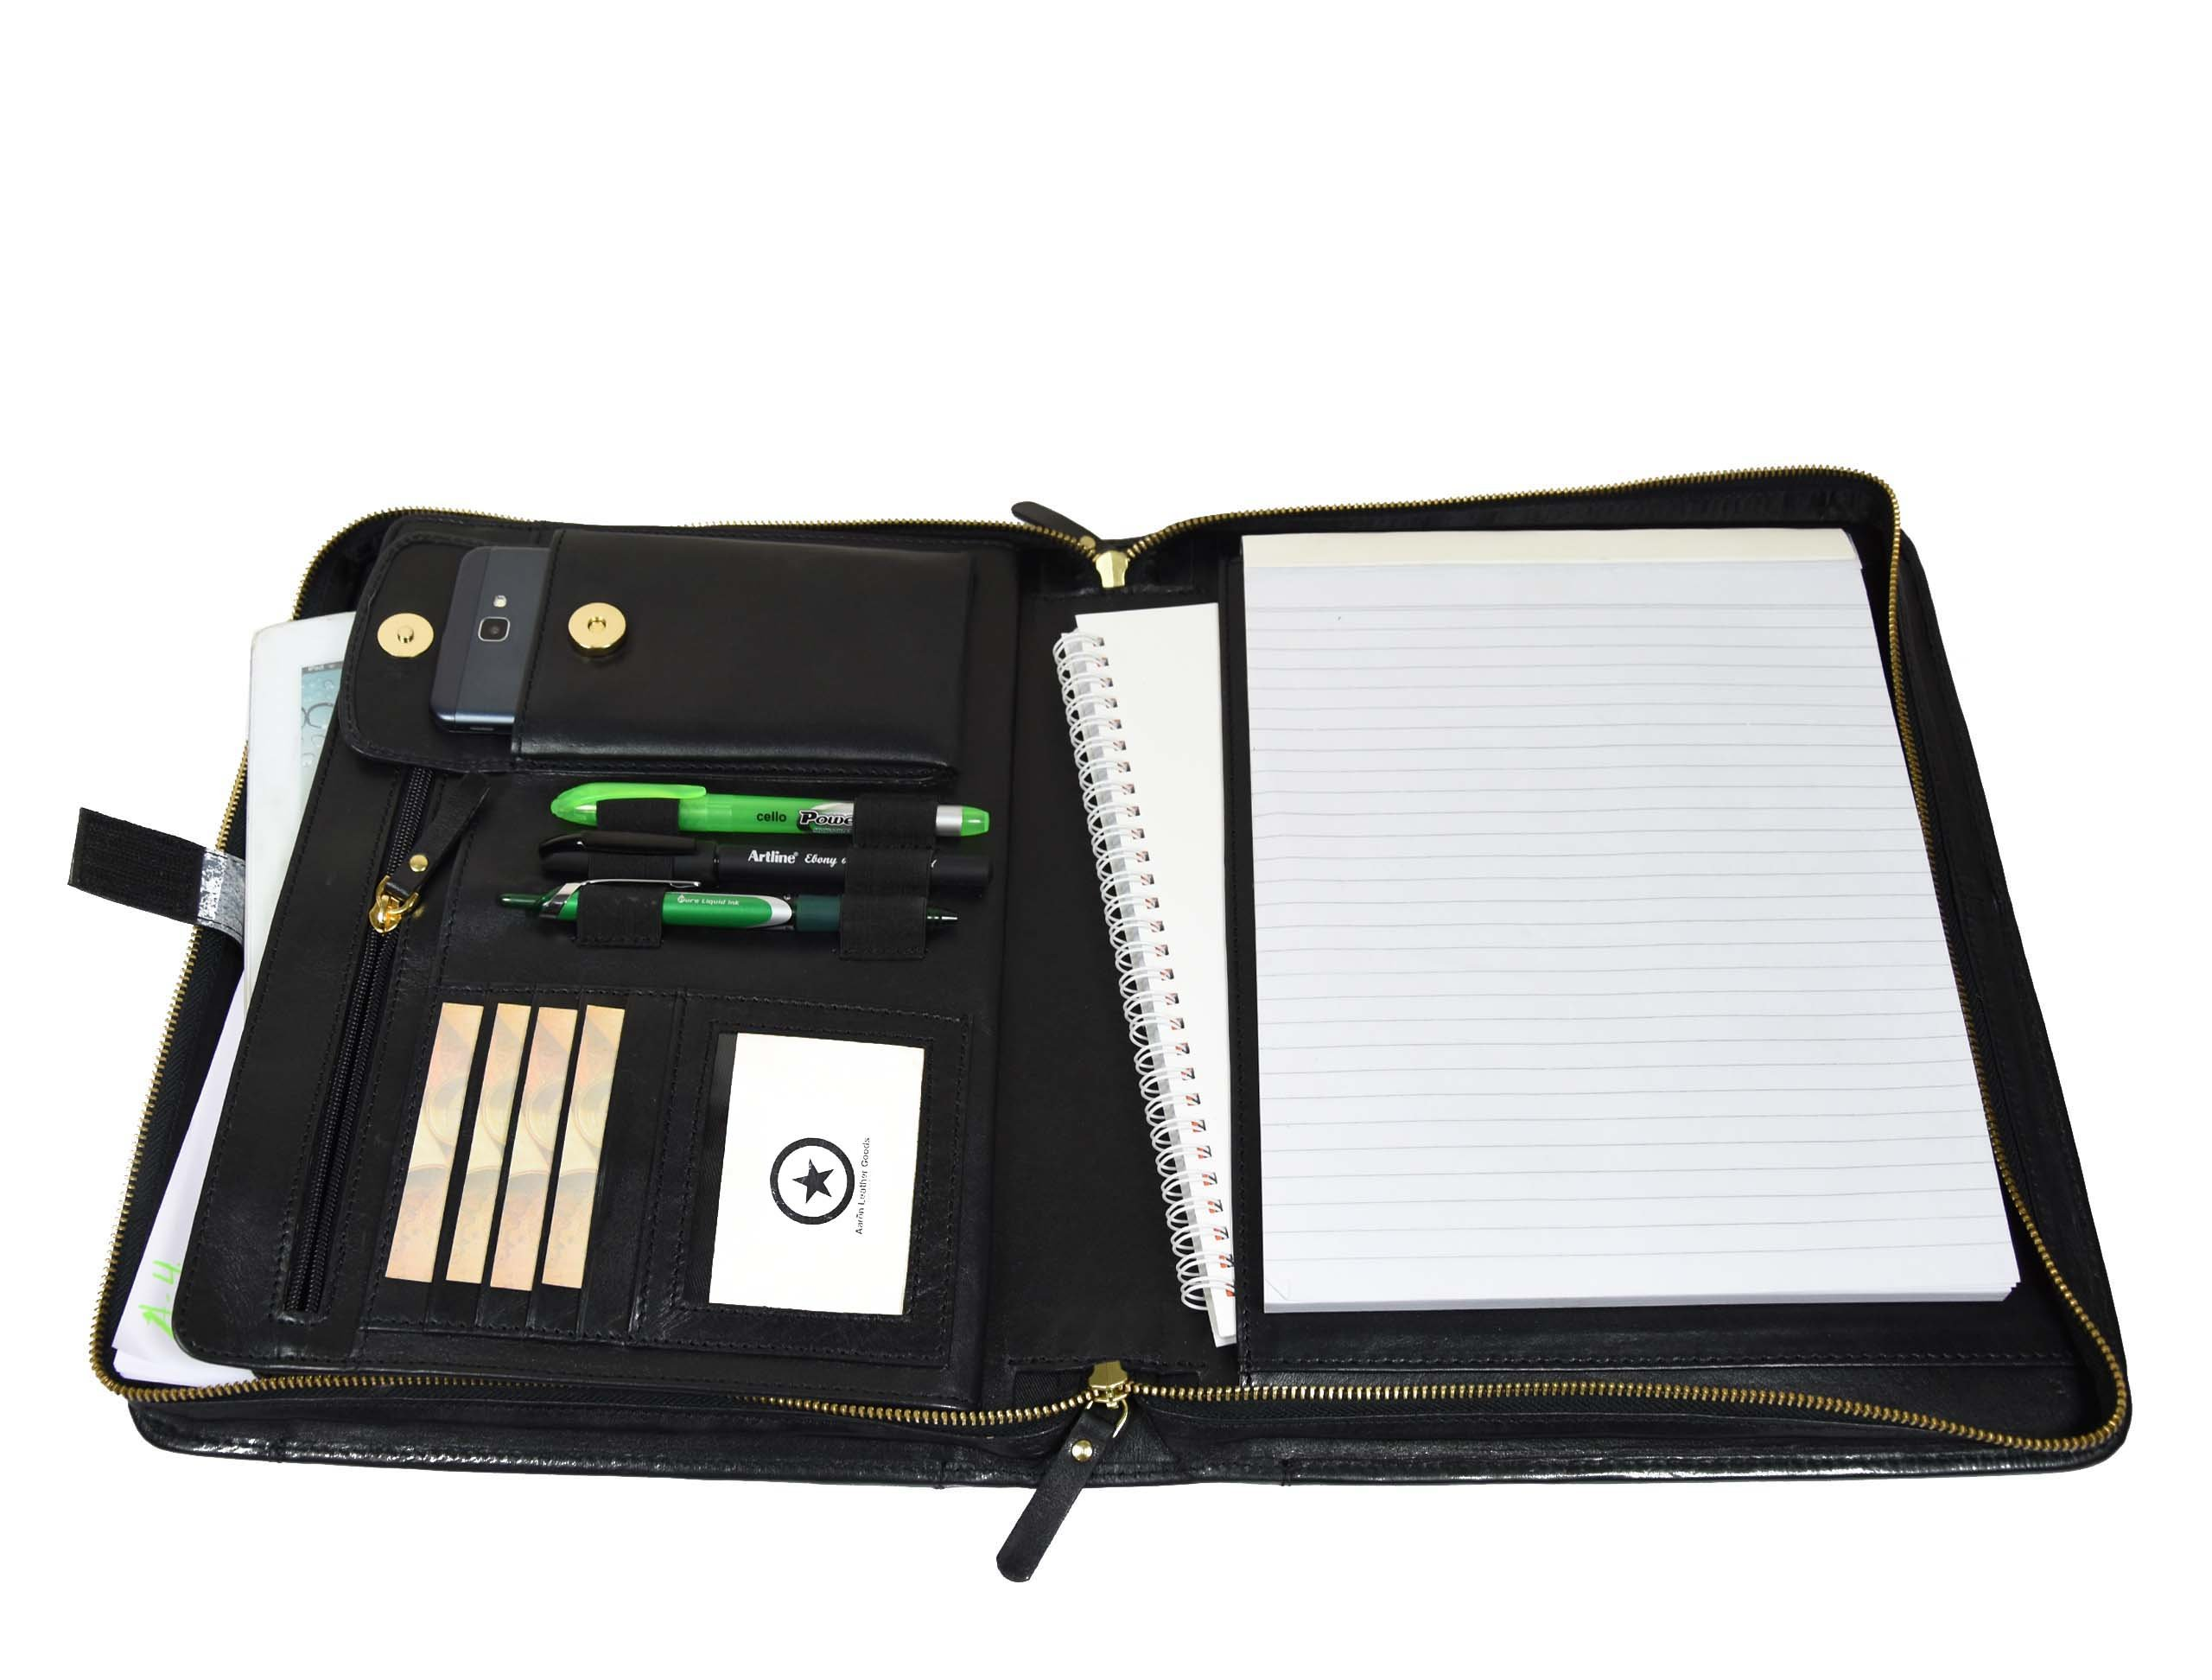 Zippered Genuine Leather Business Portfolio |Easy to Carry Organizer With Writing Pad Holder,Business Card And Pen Slots.IPAD Holder And Flip-Closure Phone Pocket, Black by Aaron Leather(With Handle)